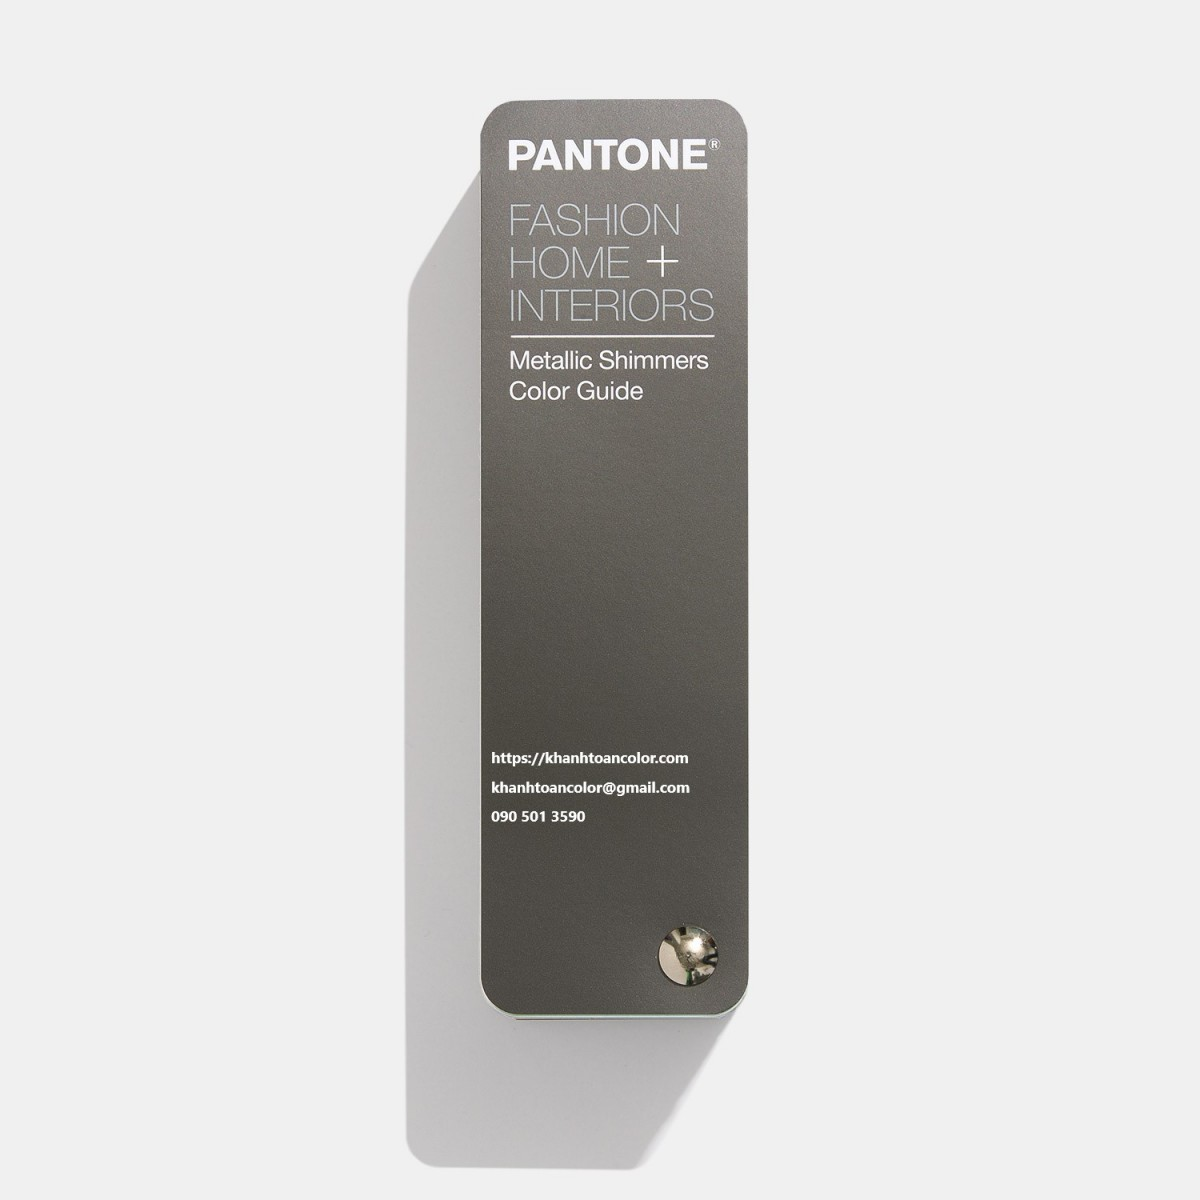 Bang mau Pantone FHIP310N-pantone-fashion-home-interiors-metallic-shimmers-color-guide-product-2